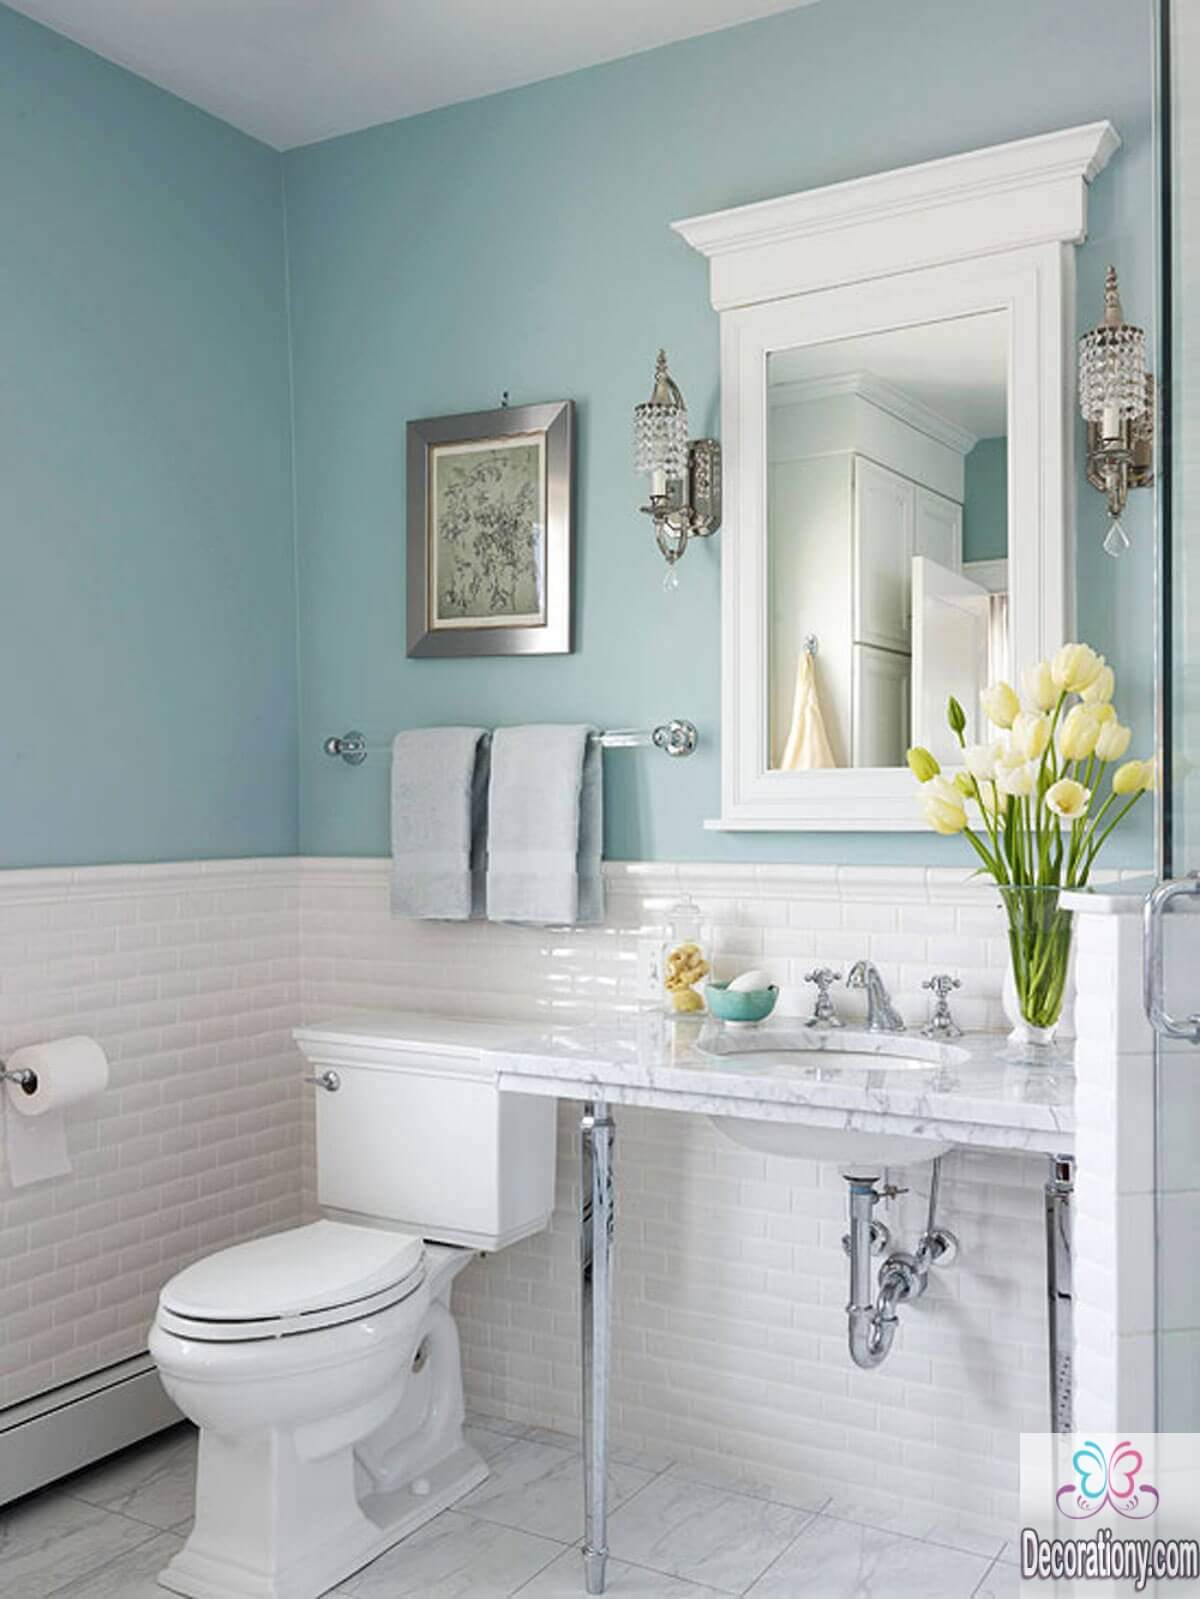 10 Affordable Colors For Small Bathrooms Decor Or Design